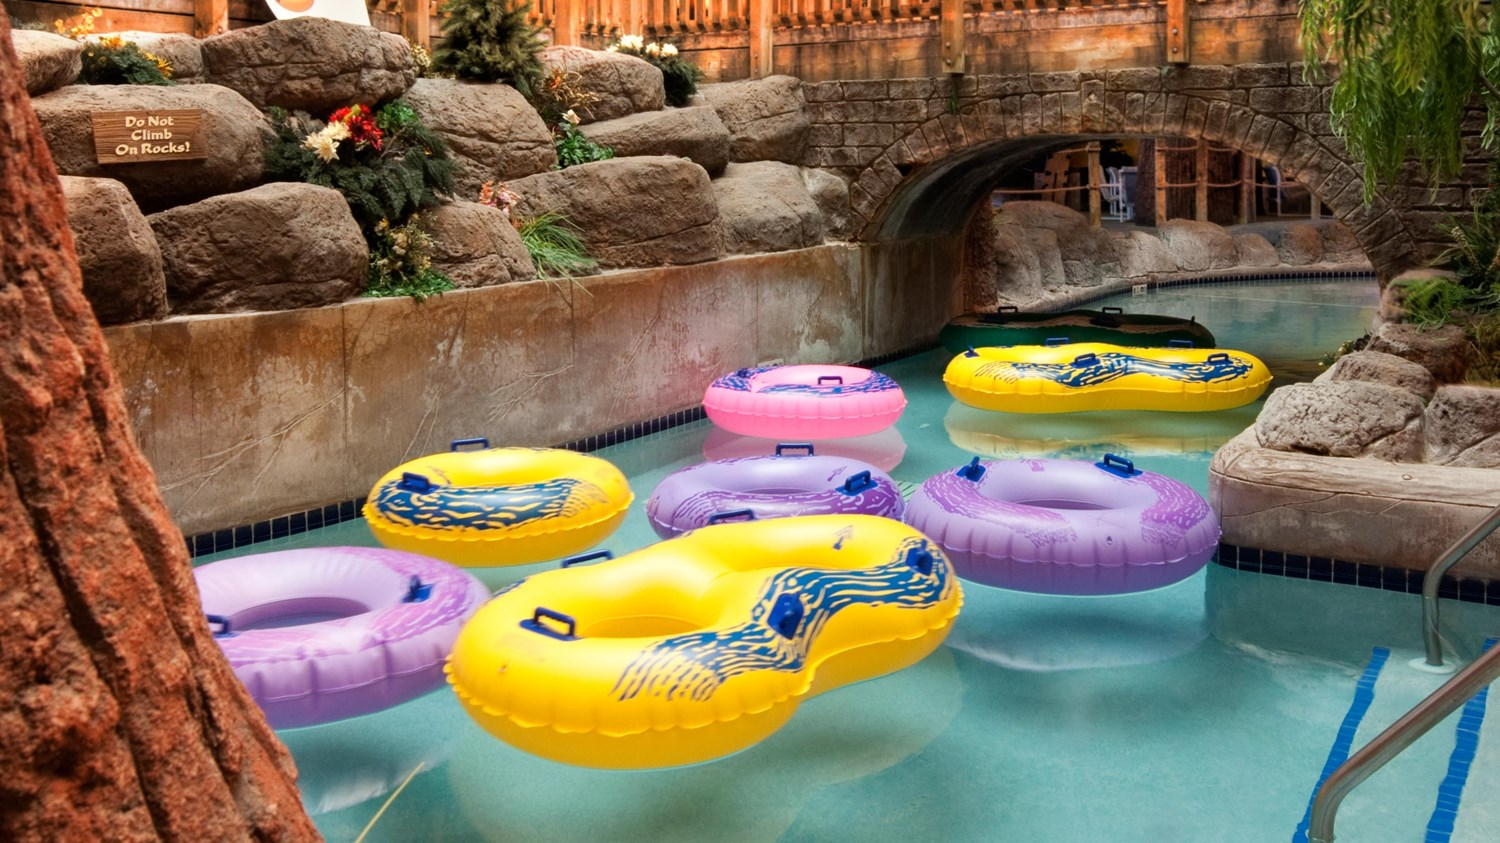 The lazy river running around the perimeter of the indoor waterpark